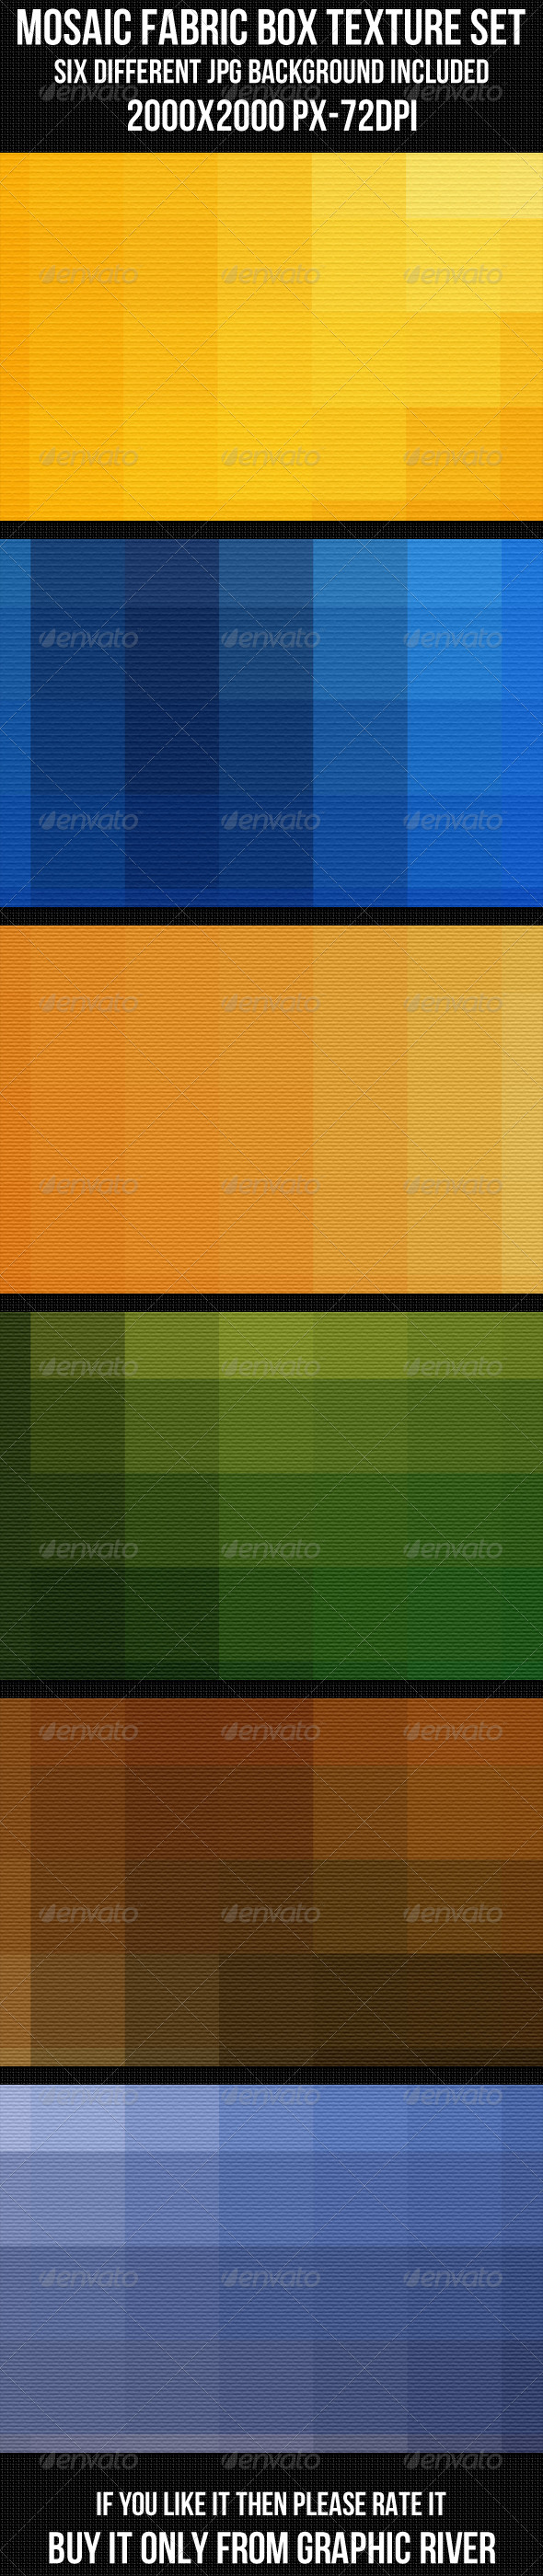 Mosaic Fabric Box Texture Set - Abstract Backgrounds